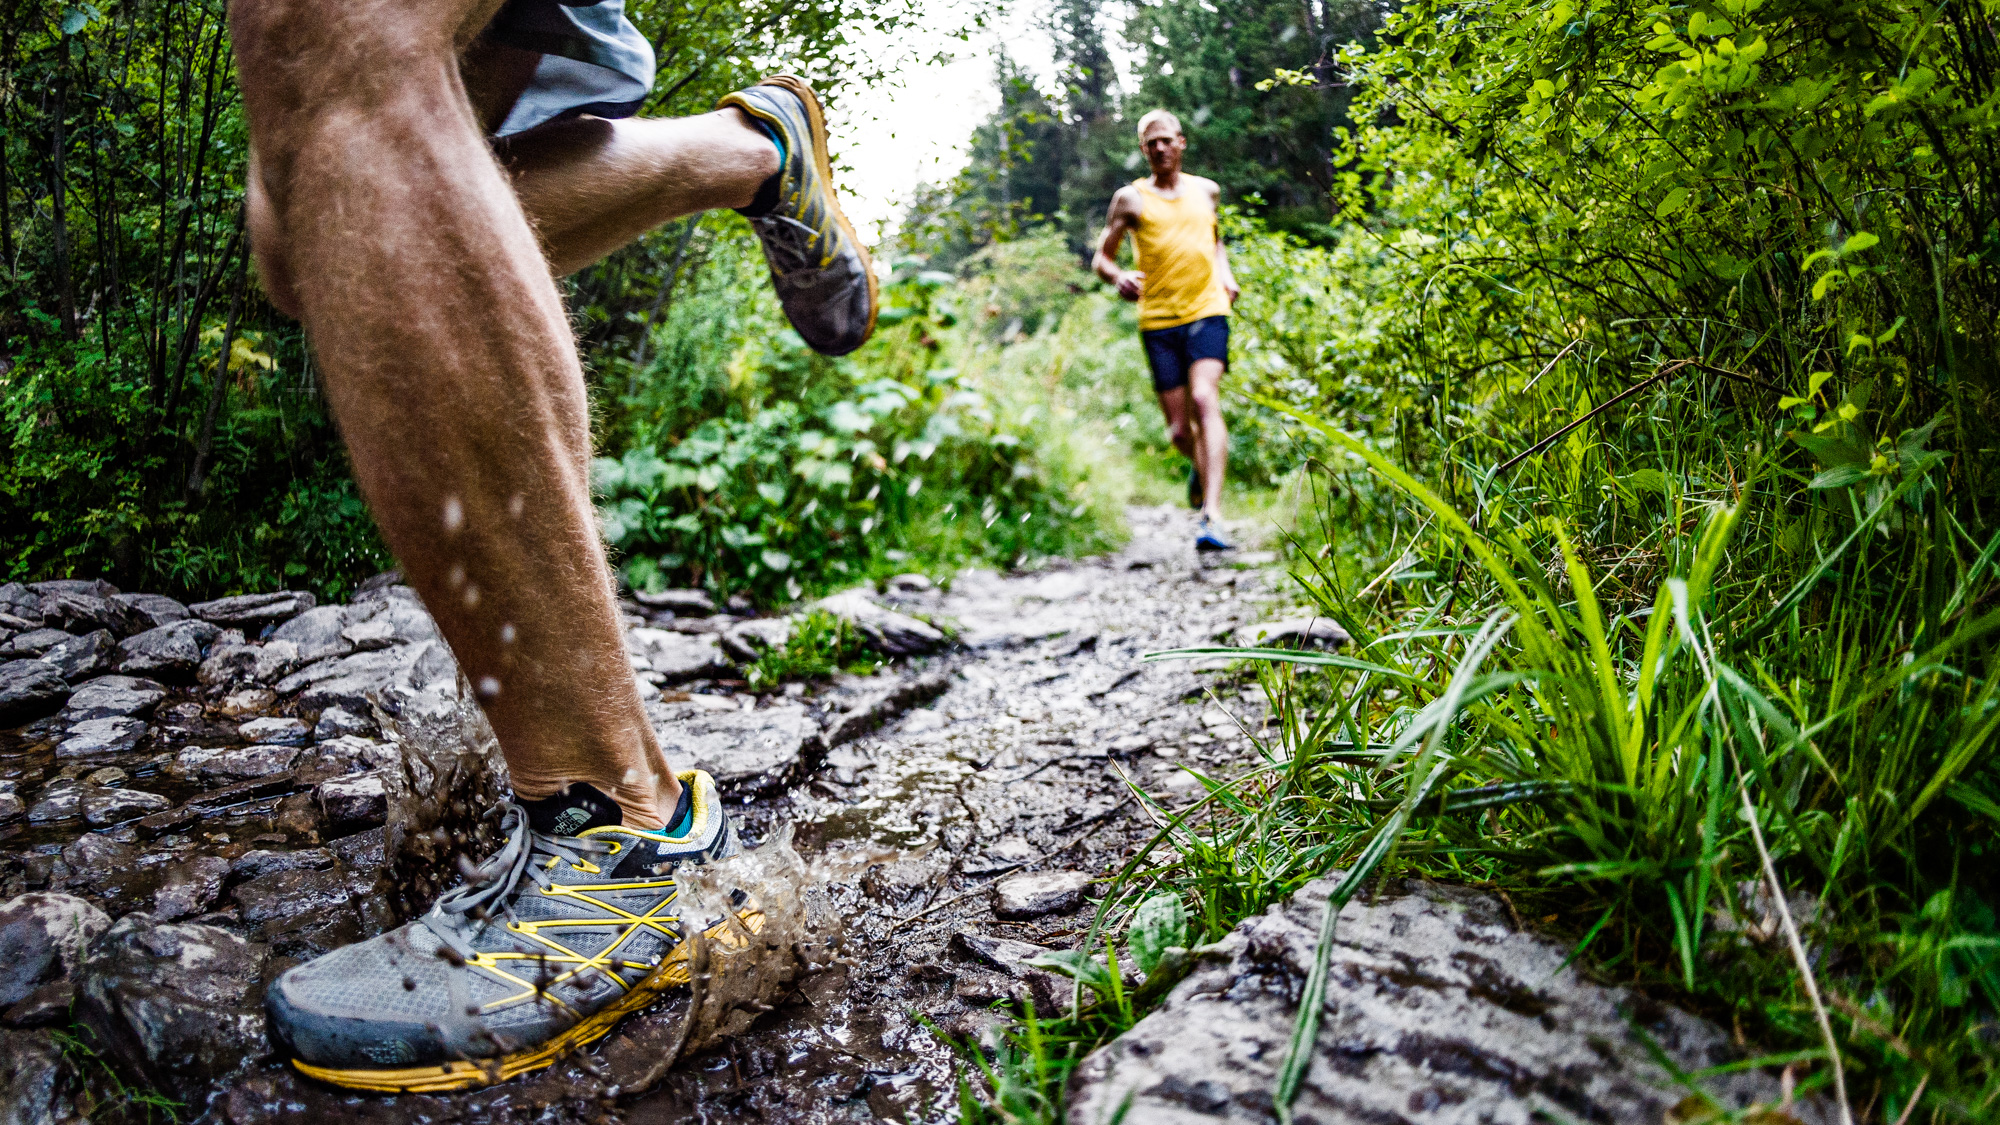 Trail Running Detail - Greg Mionske - Advertising and Editorial Photographer in Denver